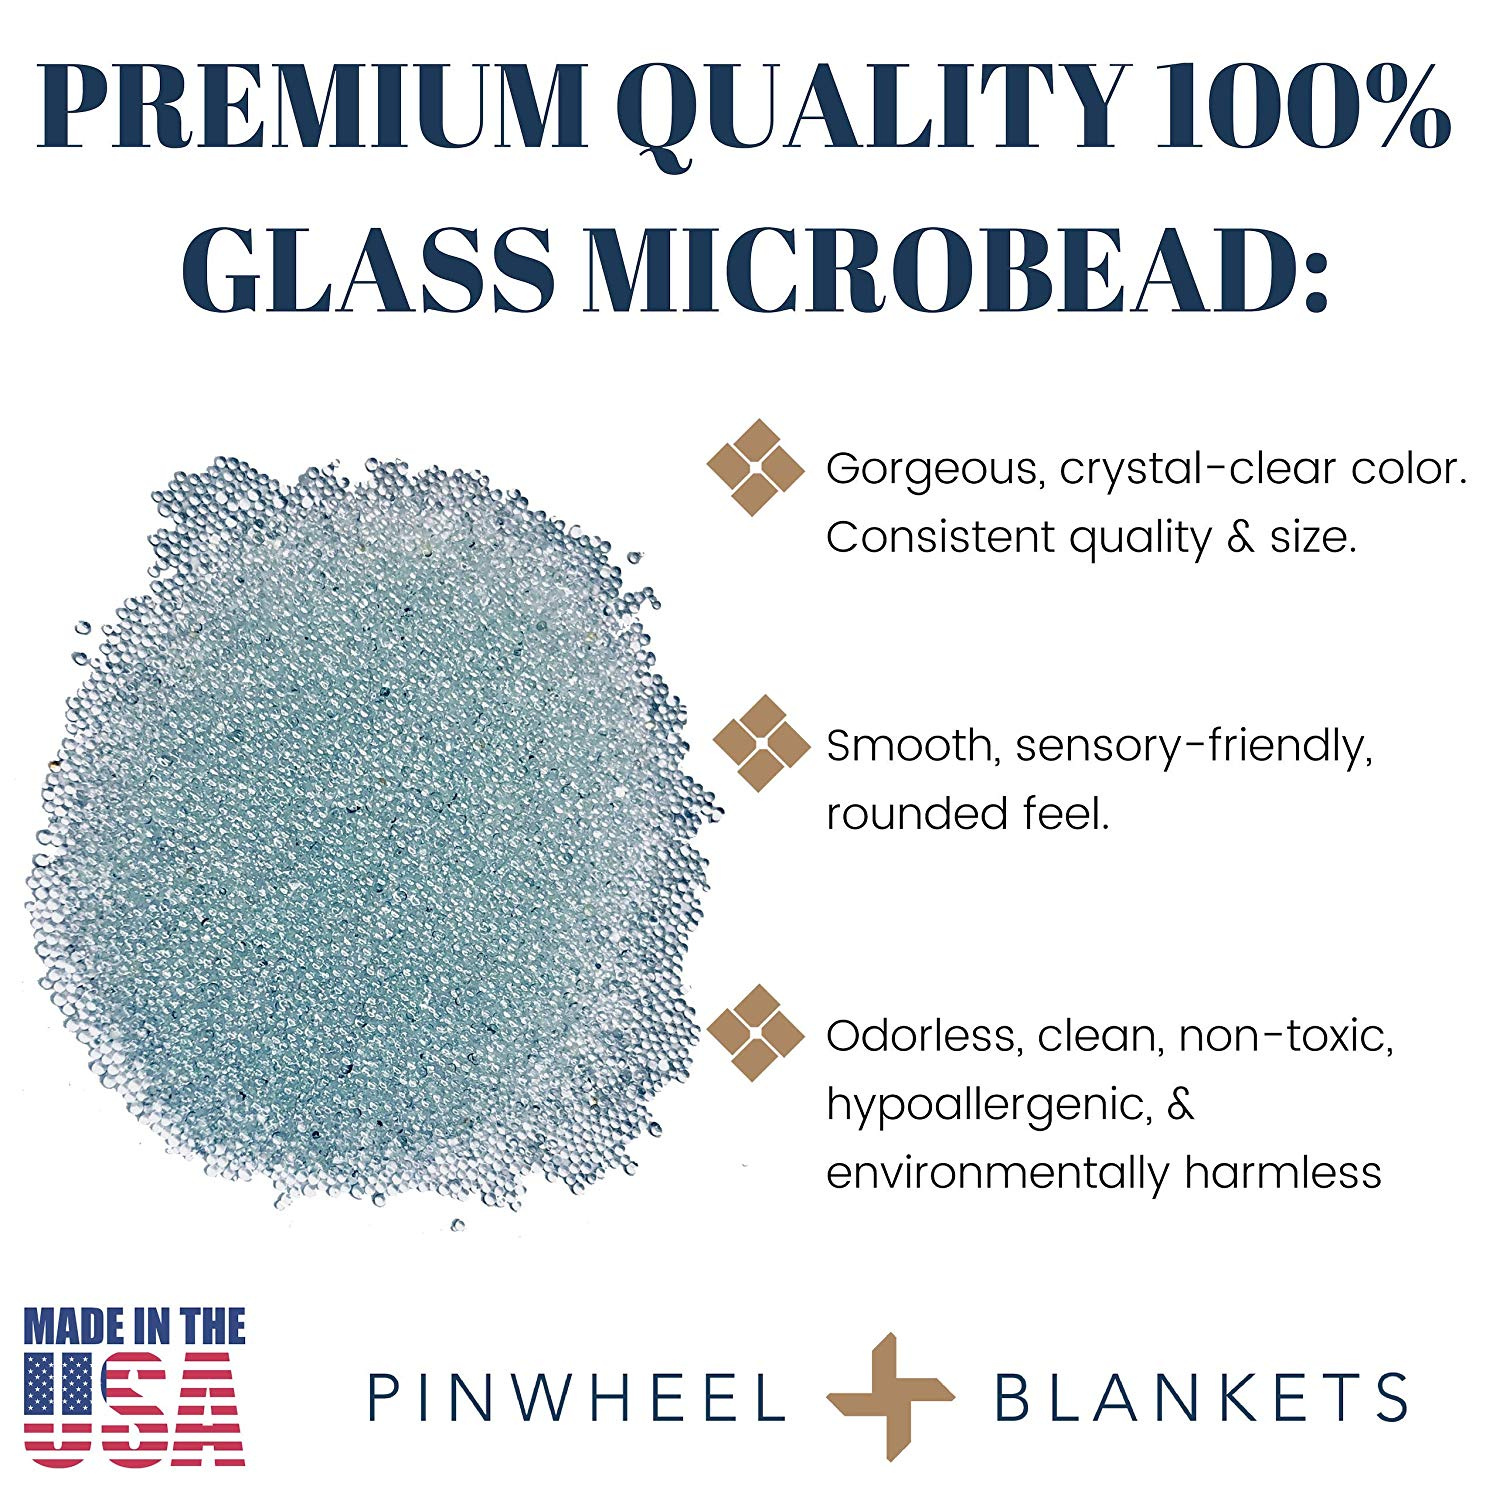 Great Beads for Weighted Blankets 10 lbs Pinwheel Premium Glass Microbeads